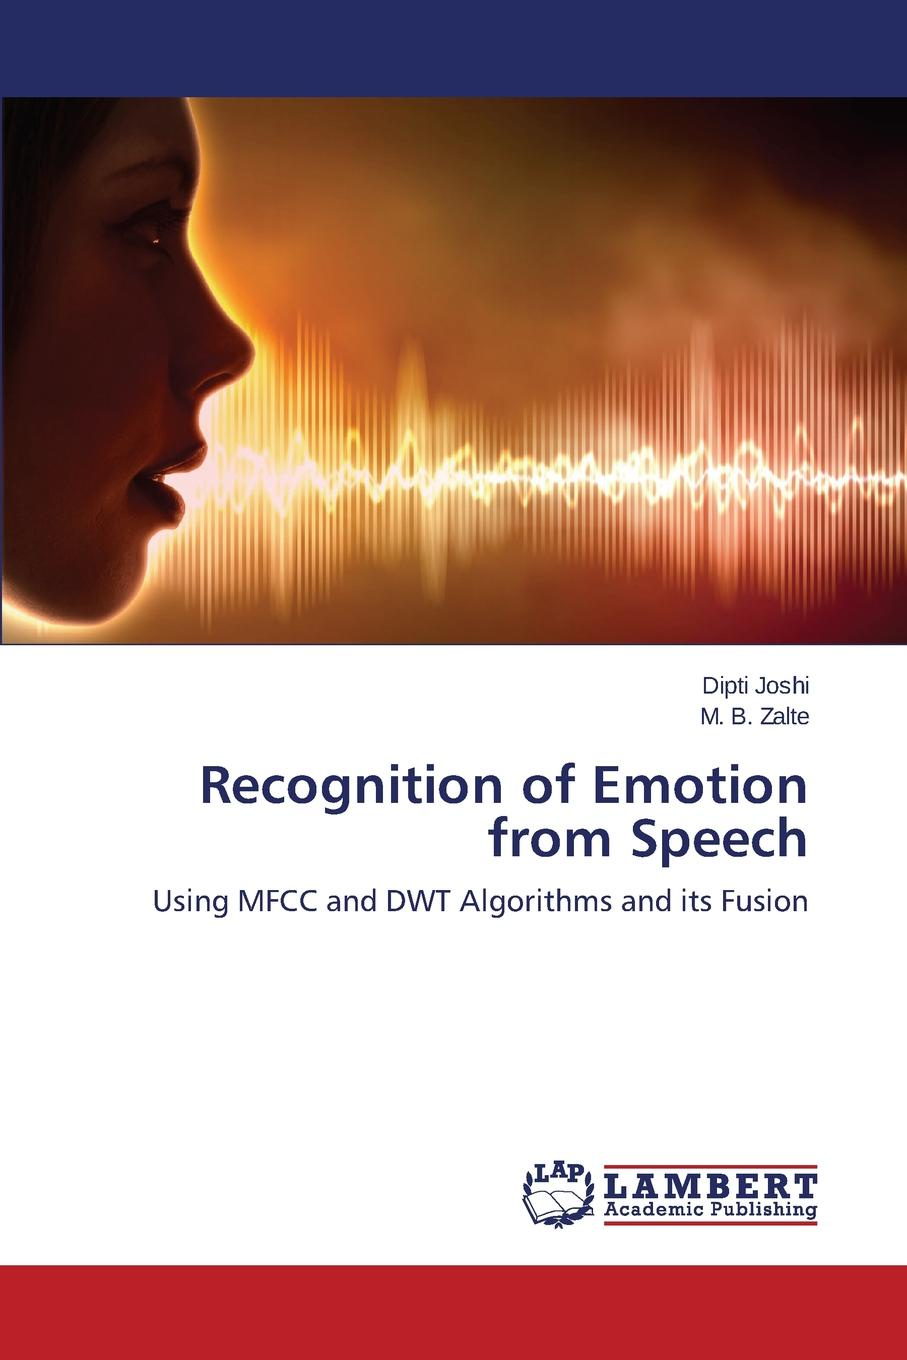 Joshi Dipti, Zalte M. B. Recognition of Emotion from Speech automatic isolated speech recognition system using mfcc analysis